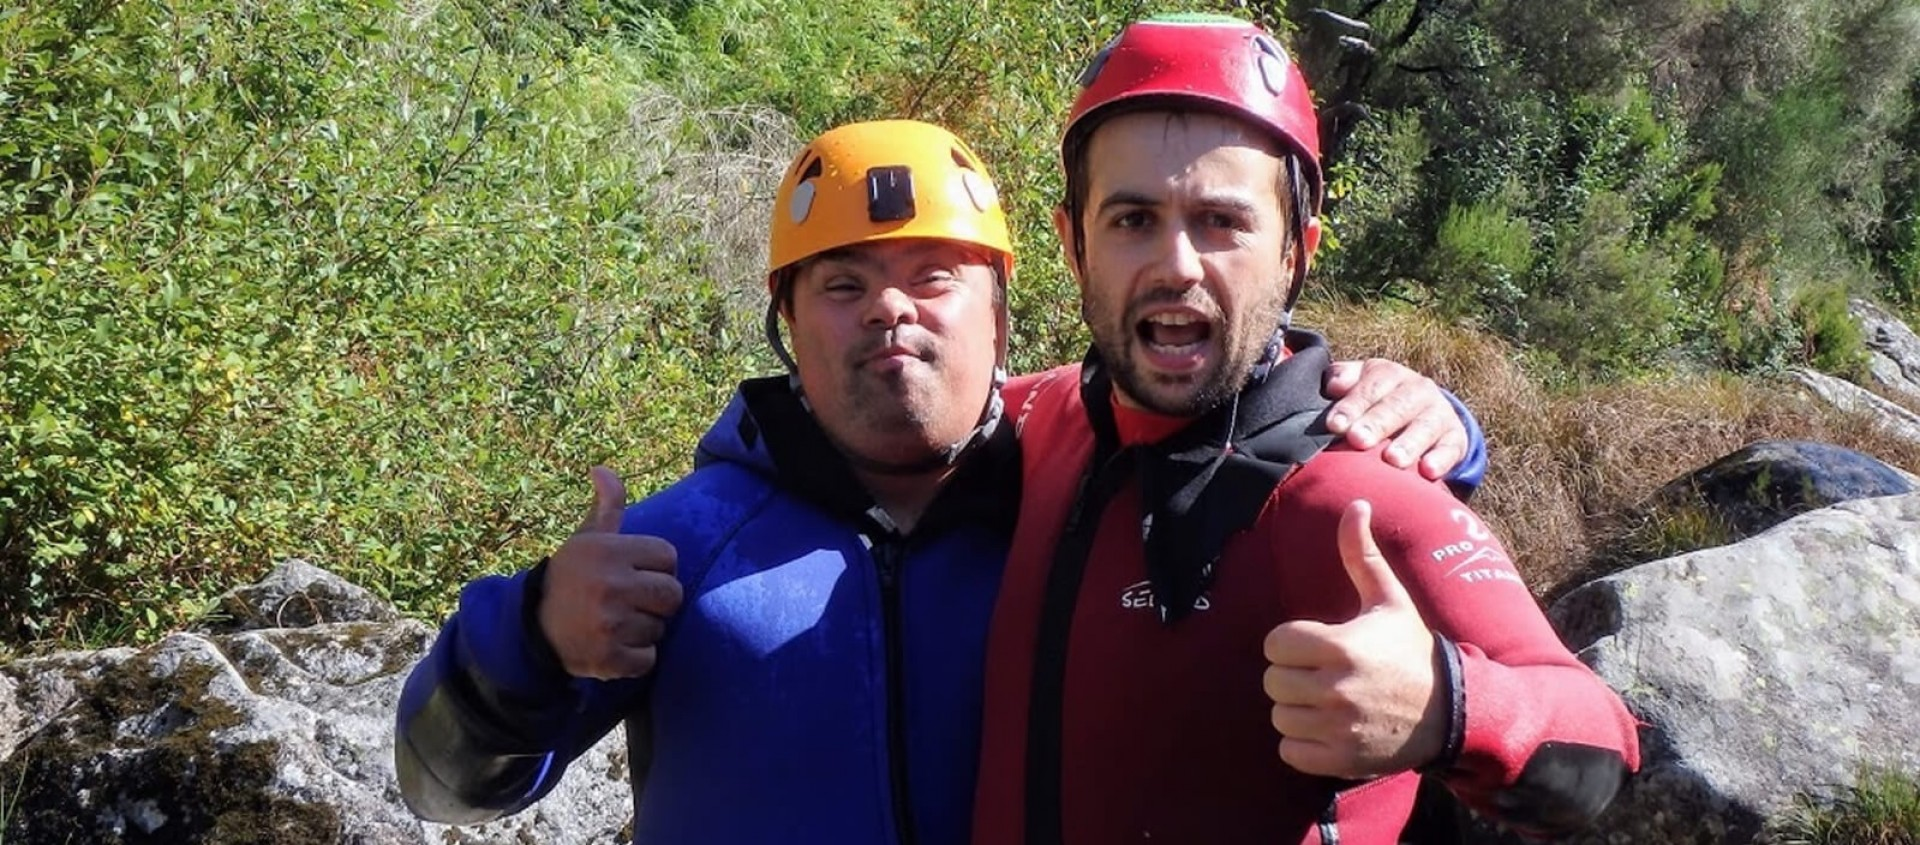 Hugging on Canyoning